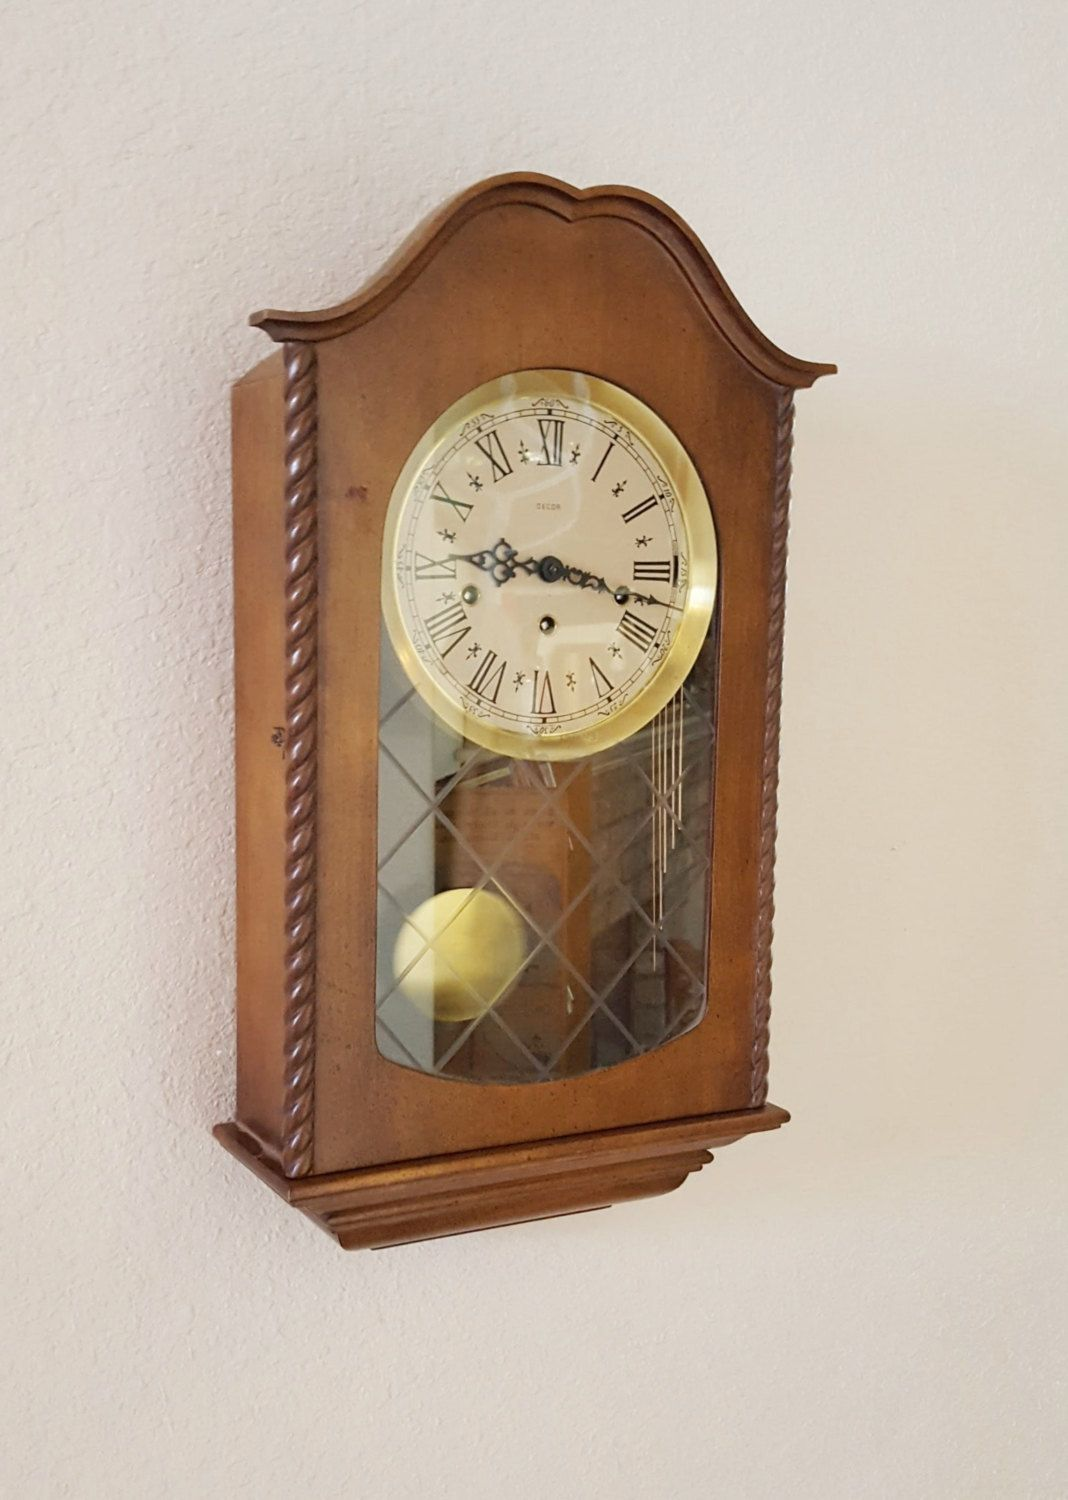 Restored Vintage Antique Imported Germany Heirloom Quality Decor Brand Westminster Chiming Wall Clock Warranty By The Wall Clock Clock Chiming Wall Clocks